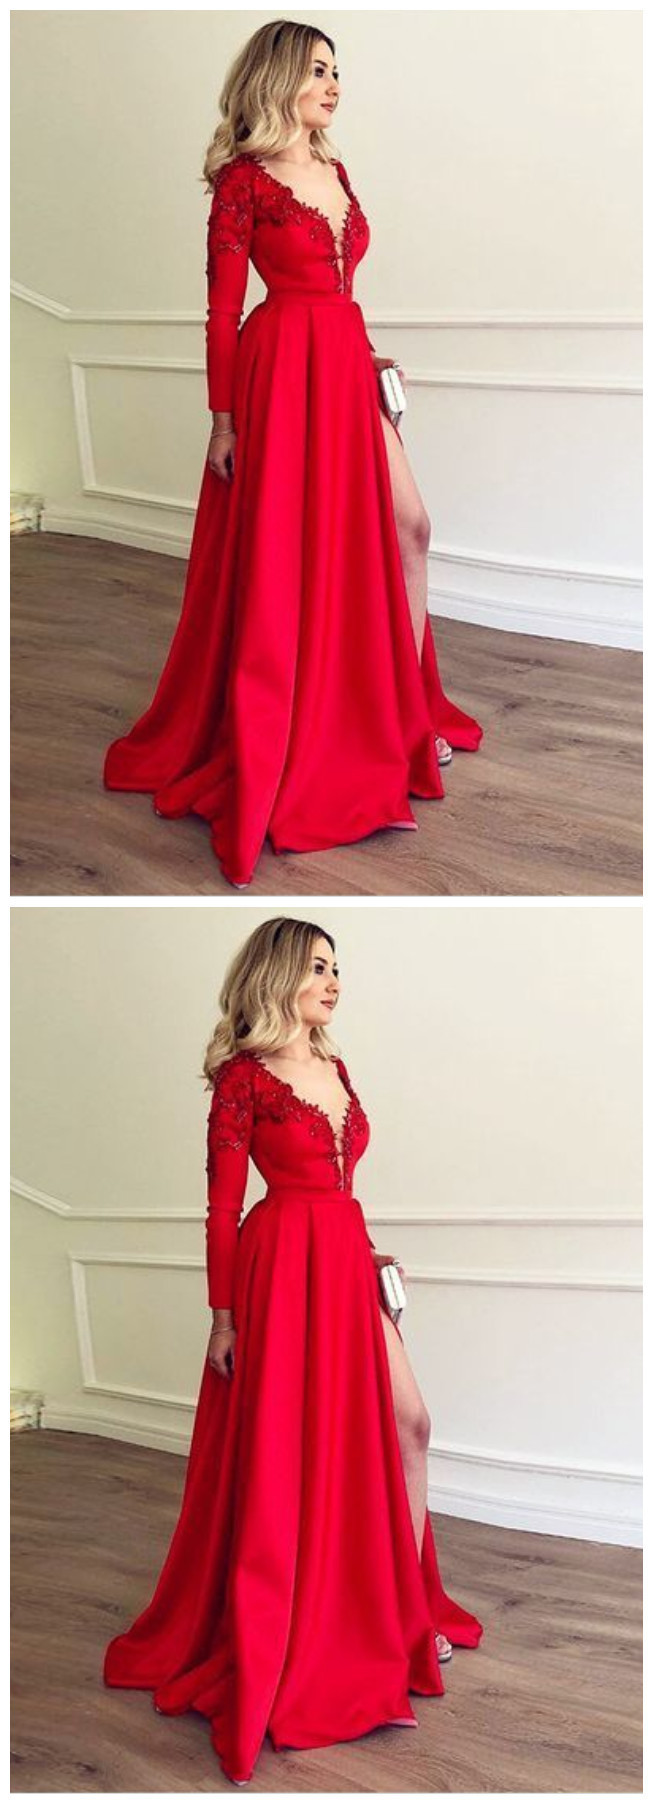 A-Line V-Neck Long Sleeves Red Prom Dress with Appliques Beading